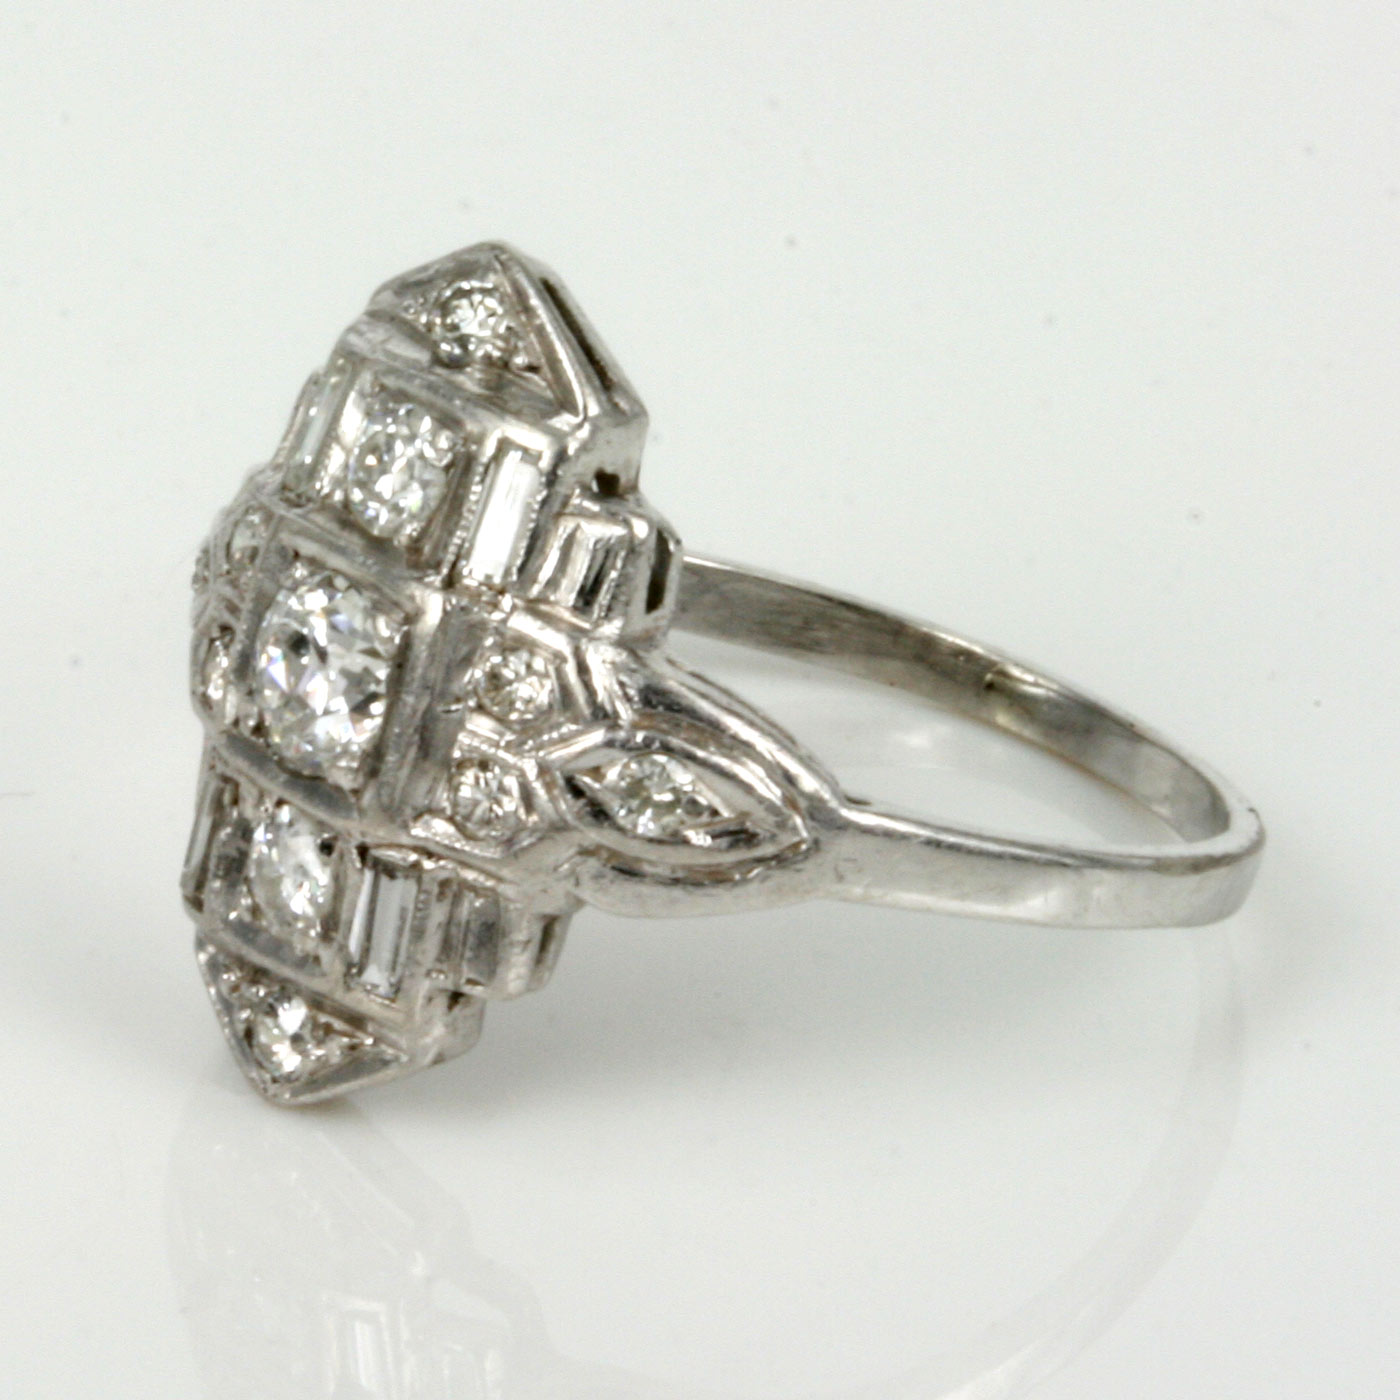 Buy Diamond Art Deco Diamond Ring From The 1920 S Sold